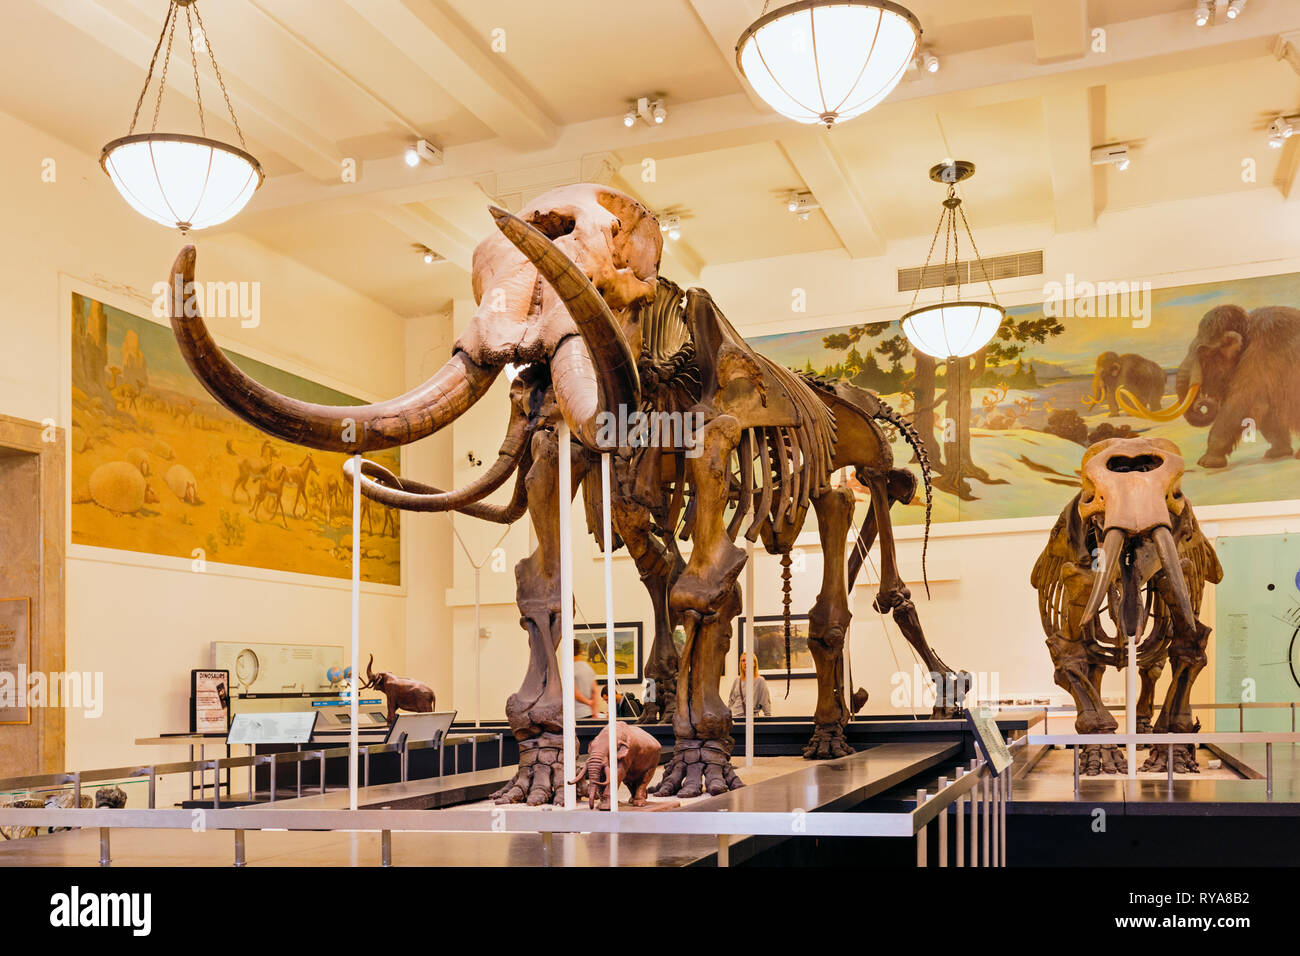 Skeleton of a mammoth, American Museum of Natural History.  New York City, New York State, United States of America. - Stock Image